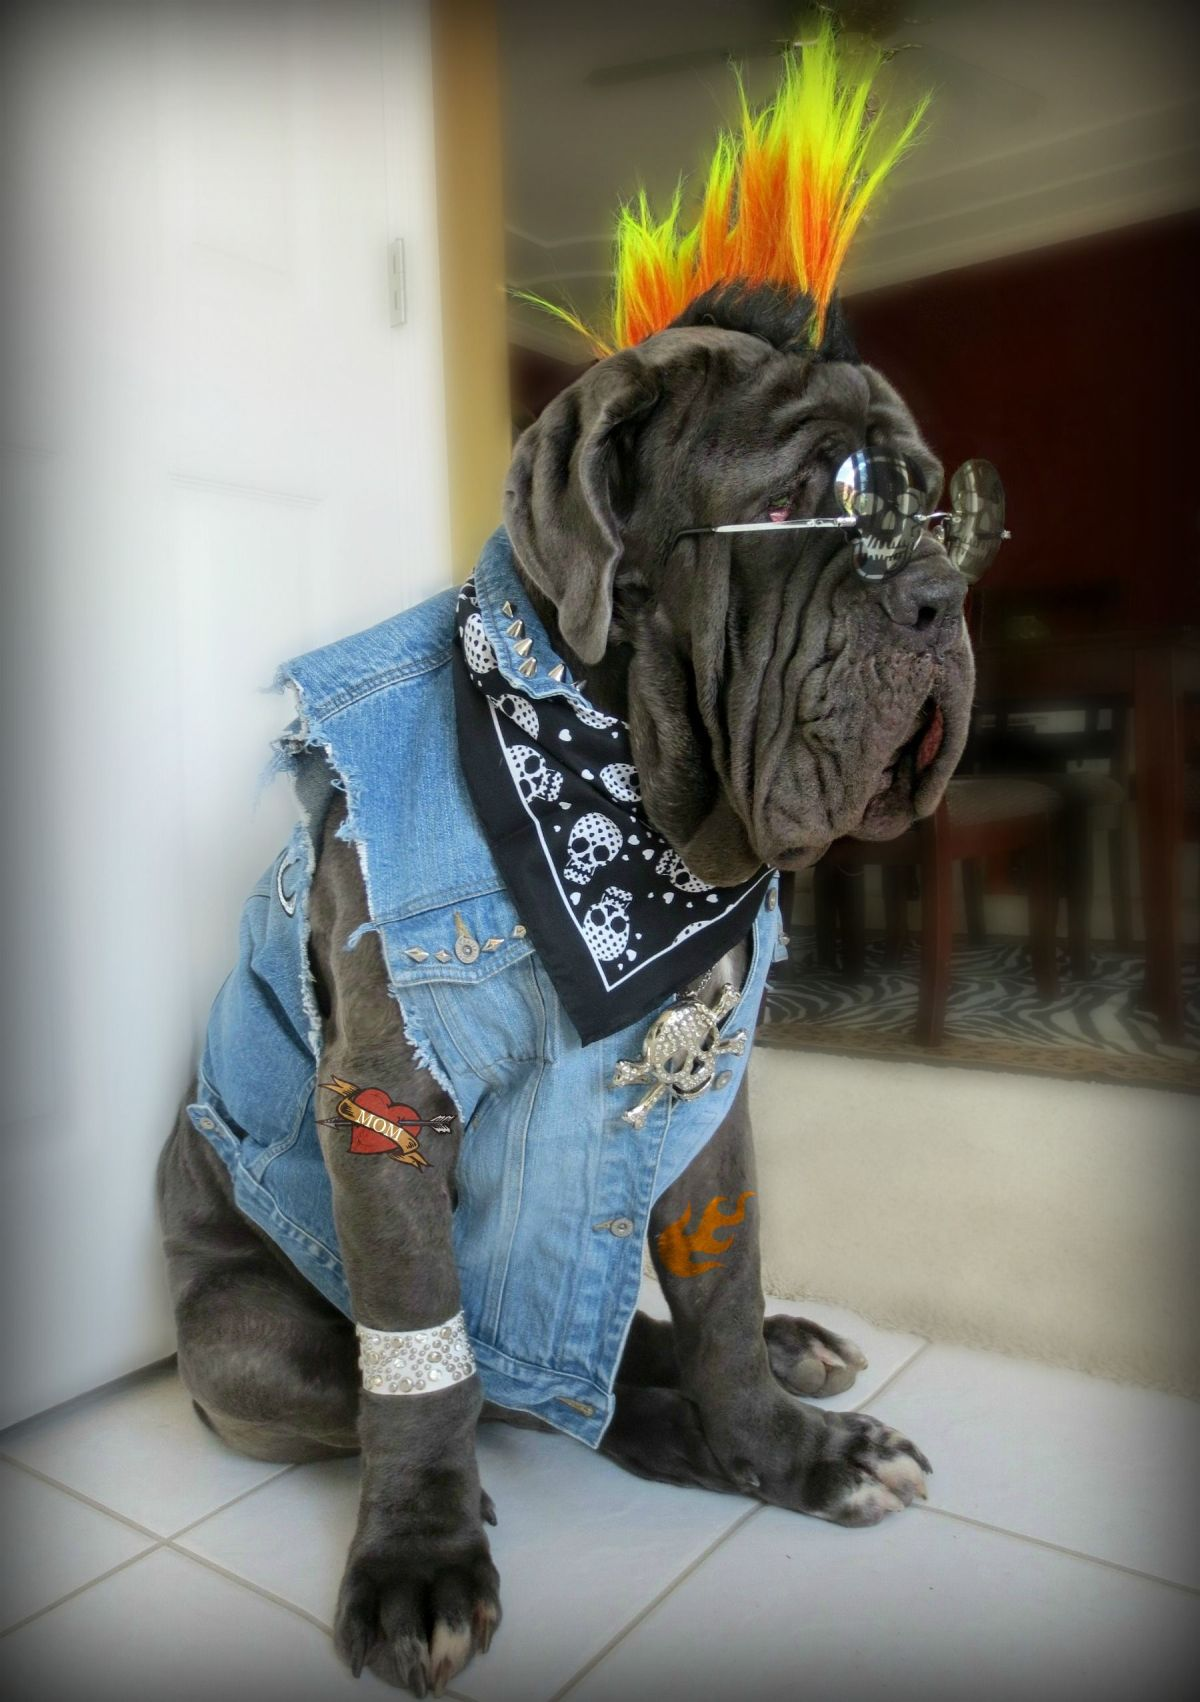 Halloween Costumes Your Dog Won't Hate (Too Much)